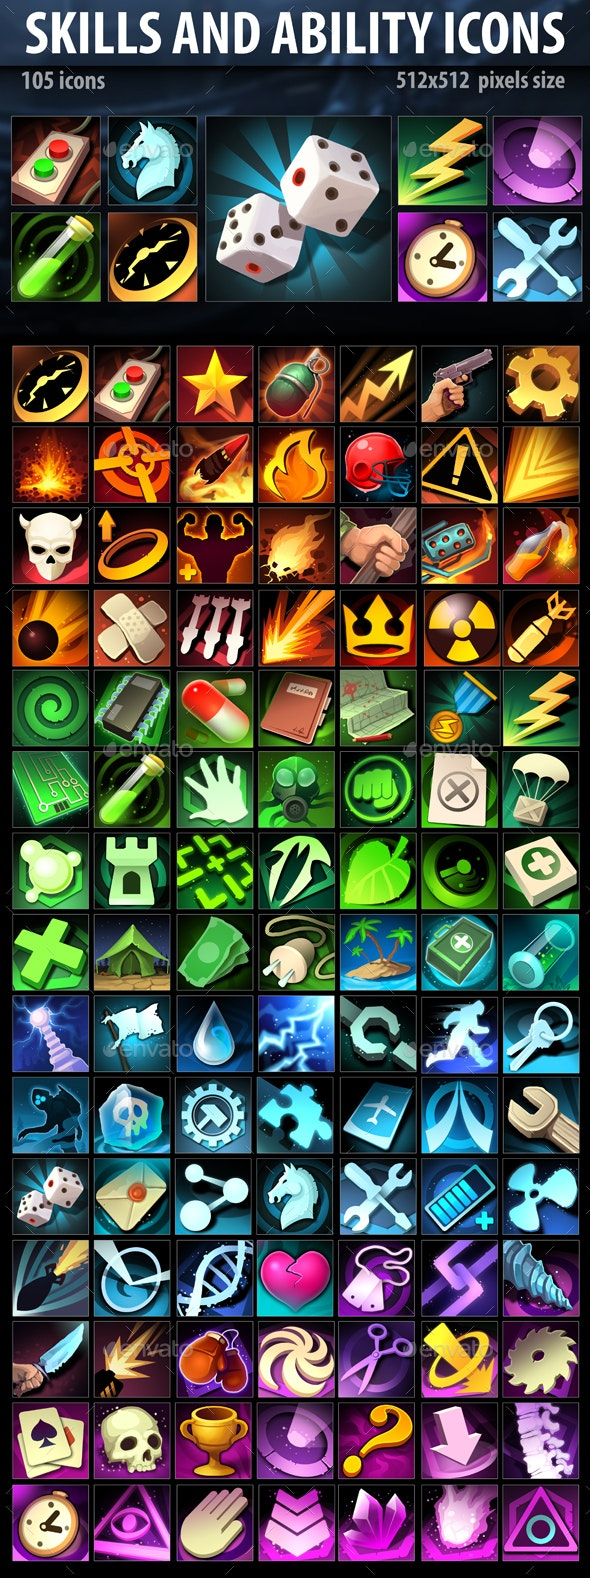 Skills and Ability Icons - Miscellaneous Game Assets